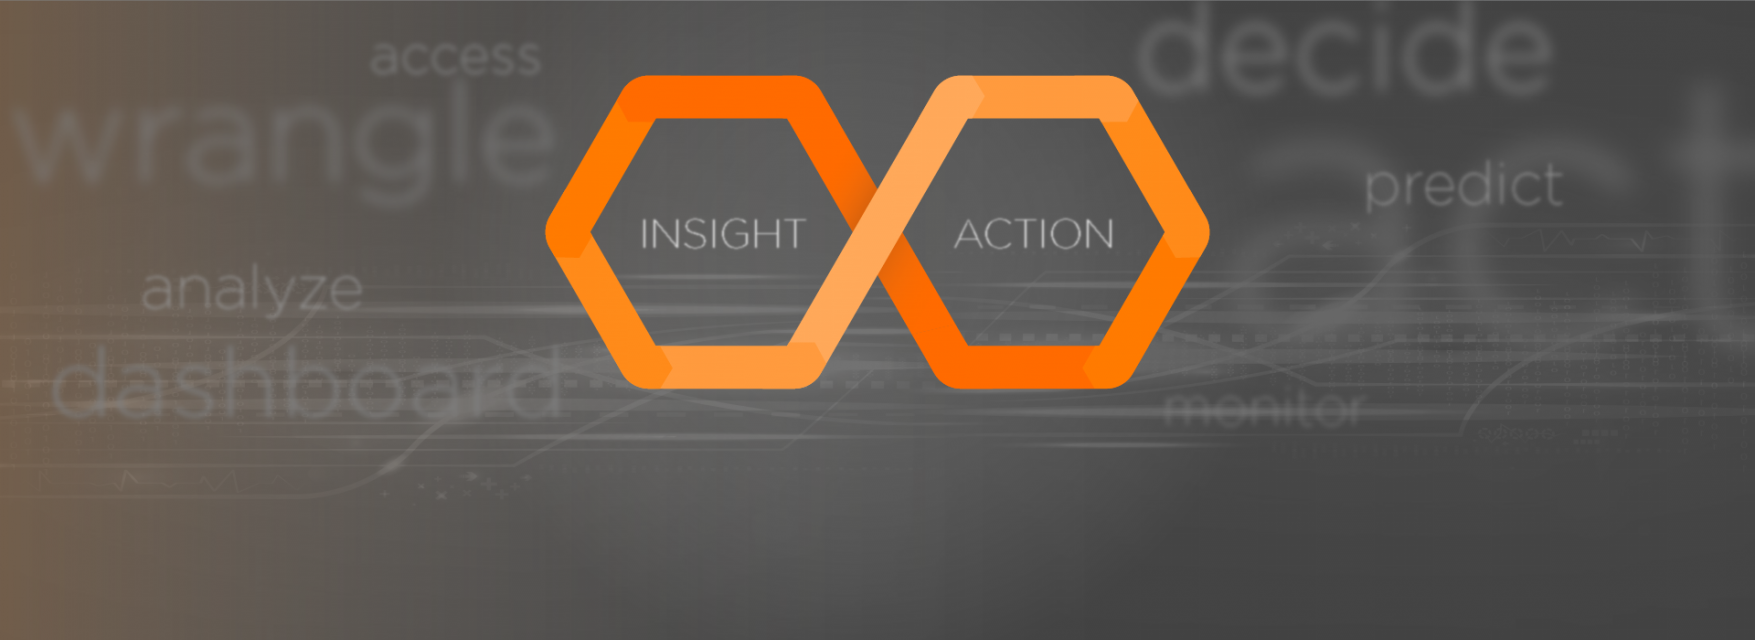 TIBCO System of Insight, the insight platform for Enterprise Analytics